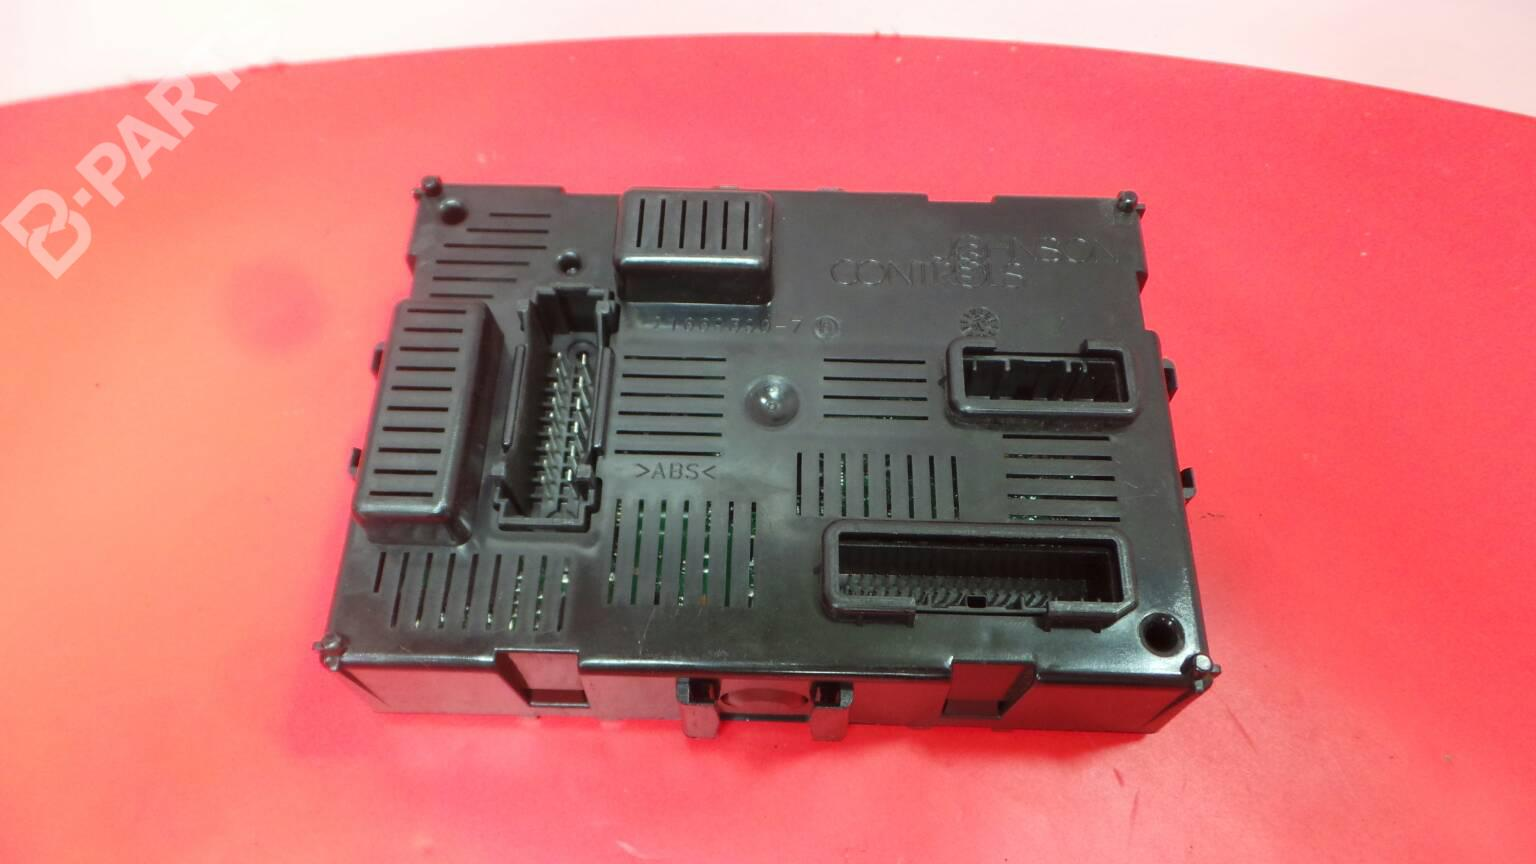 Fuse Box Renault Clio Iii Br0 1 Cr0 15 Dci Br17 Cr17 1290720 On A 8200811816 28120982